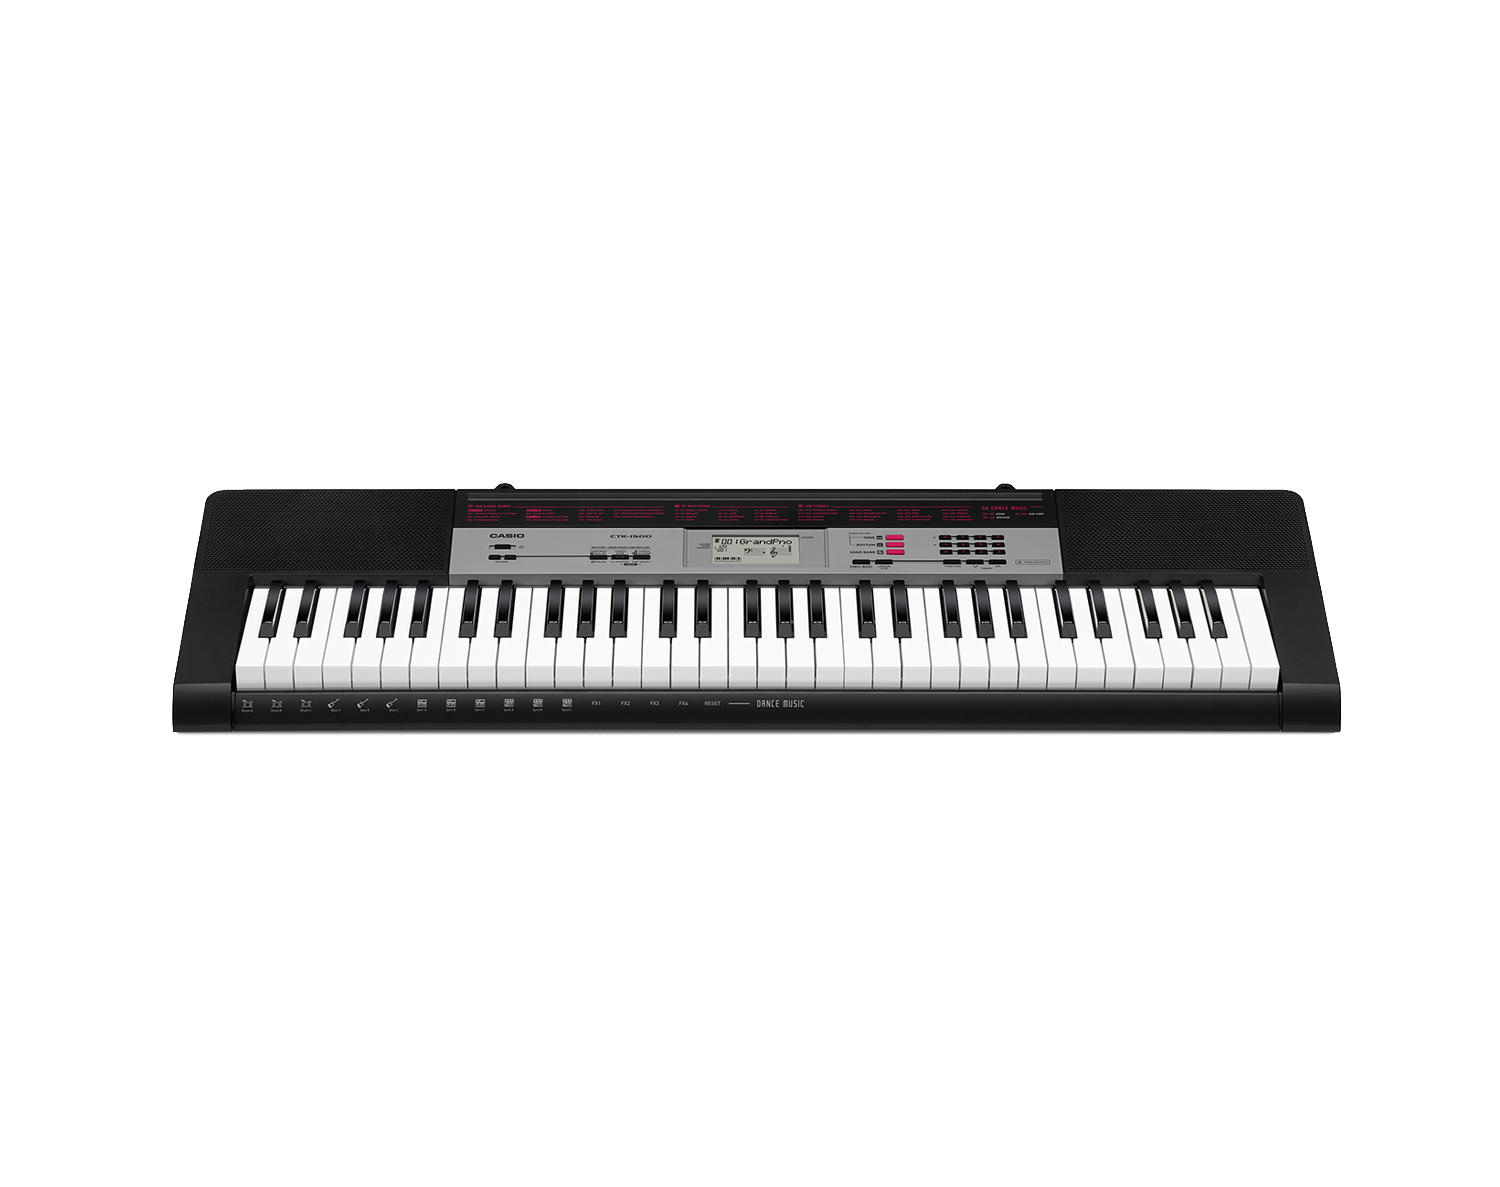 Casio CTK-1500 portable keyboard image front